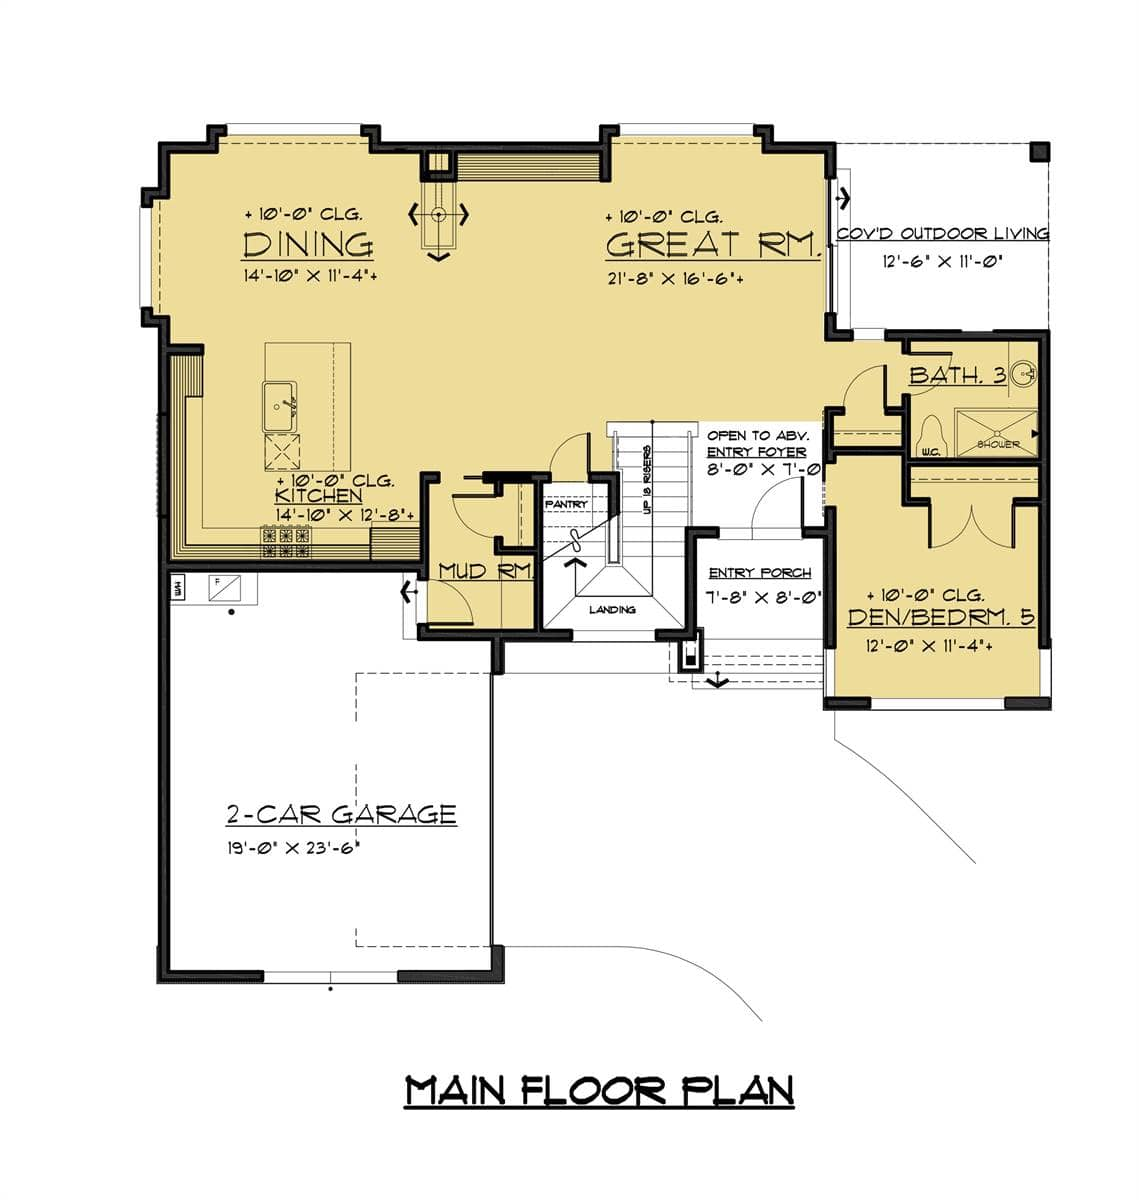 Main level floor plan of a two-story 4-bedroom modern style home with entry porch, great room, shared dining and kitchen, and a versatile den/bedroom.